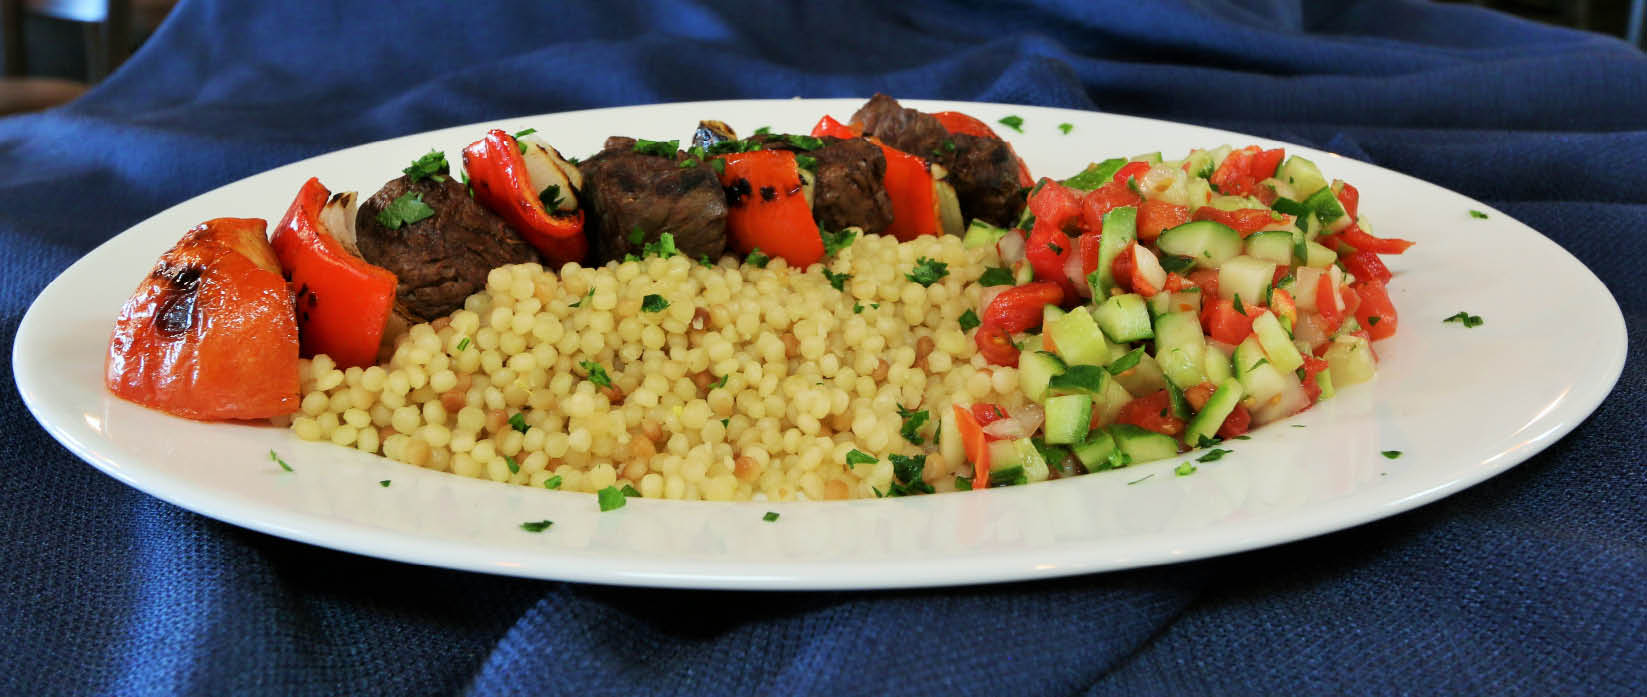 Grass-fed beef kabob and couscous in Birmingham, AL